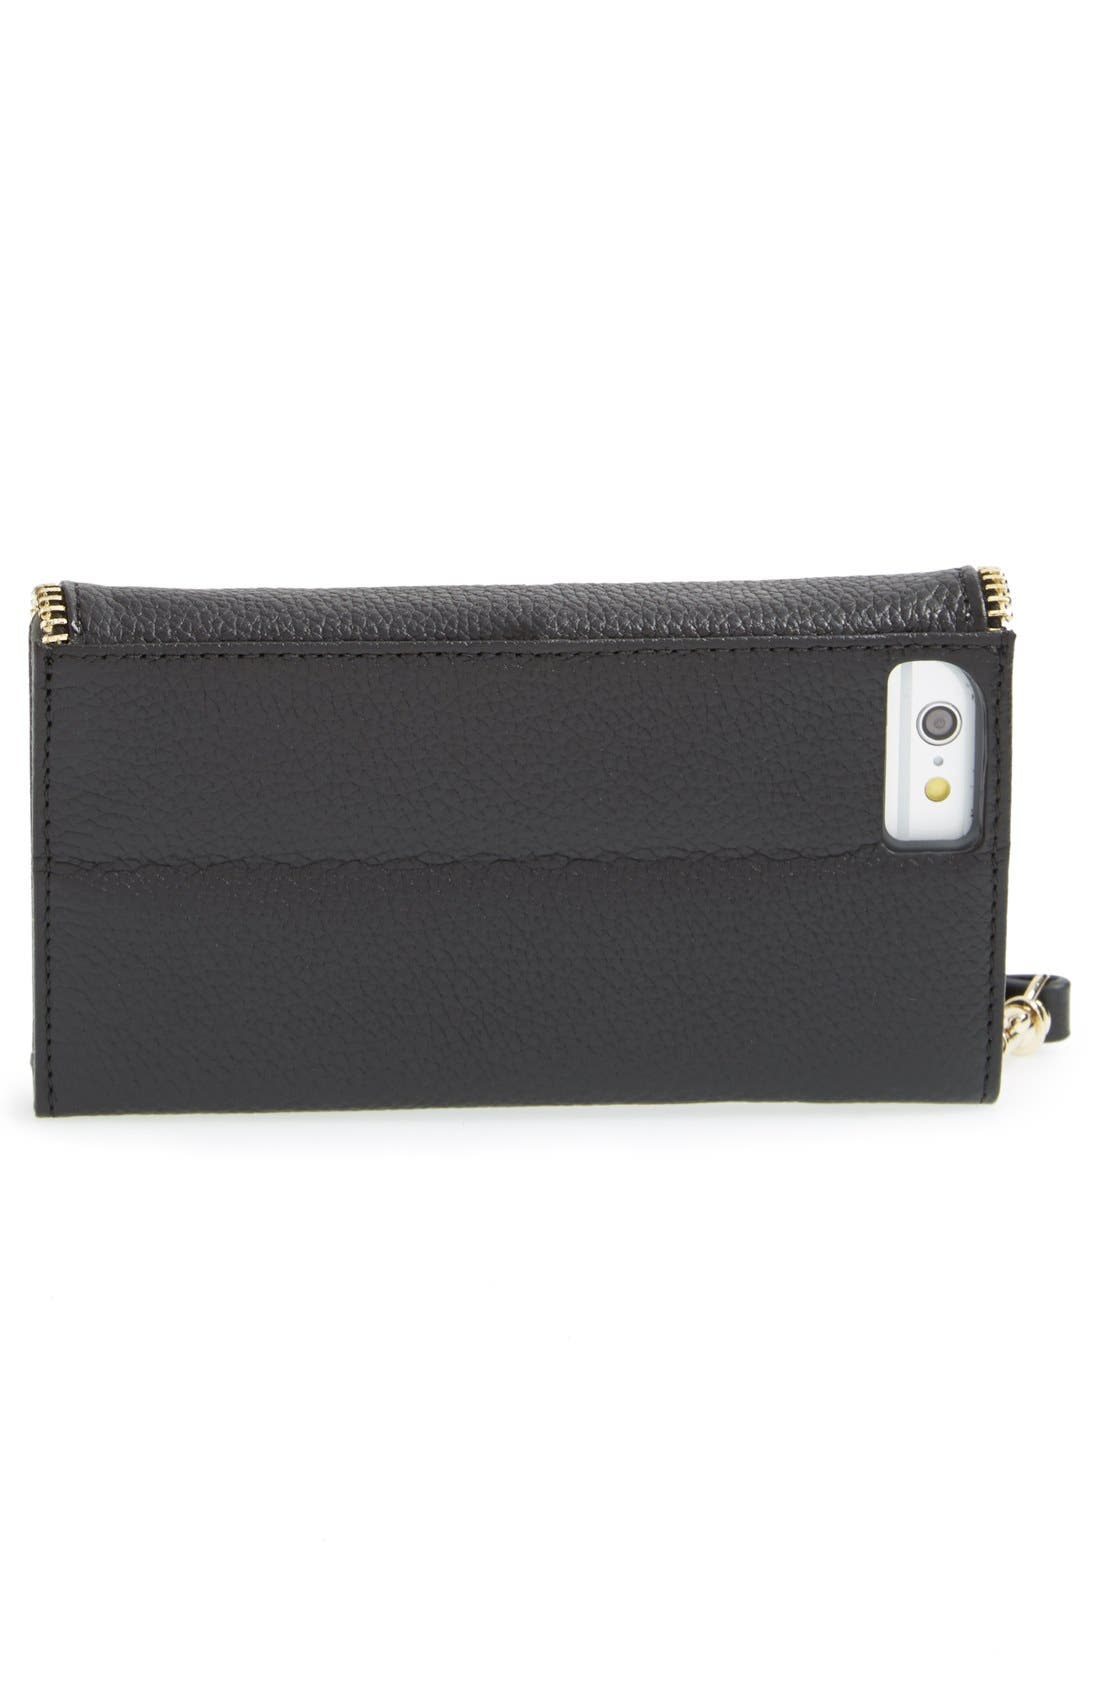 REBECCA MINKOFF,                             iPhone 6 & 6s Folio Wristlet,                             Alternate thumbnail 4, color,                             001